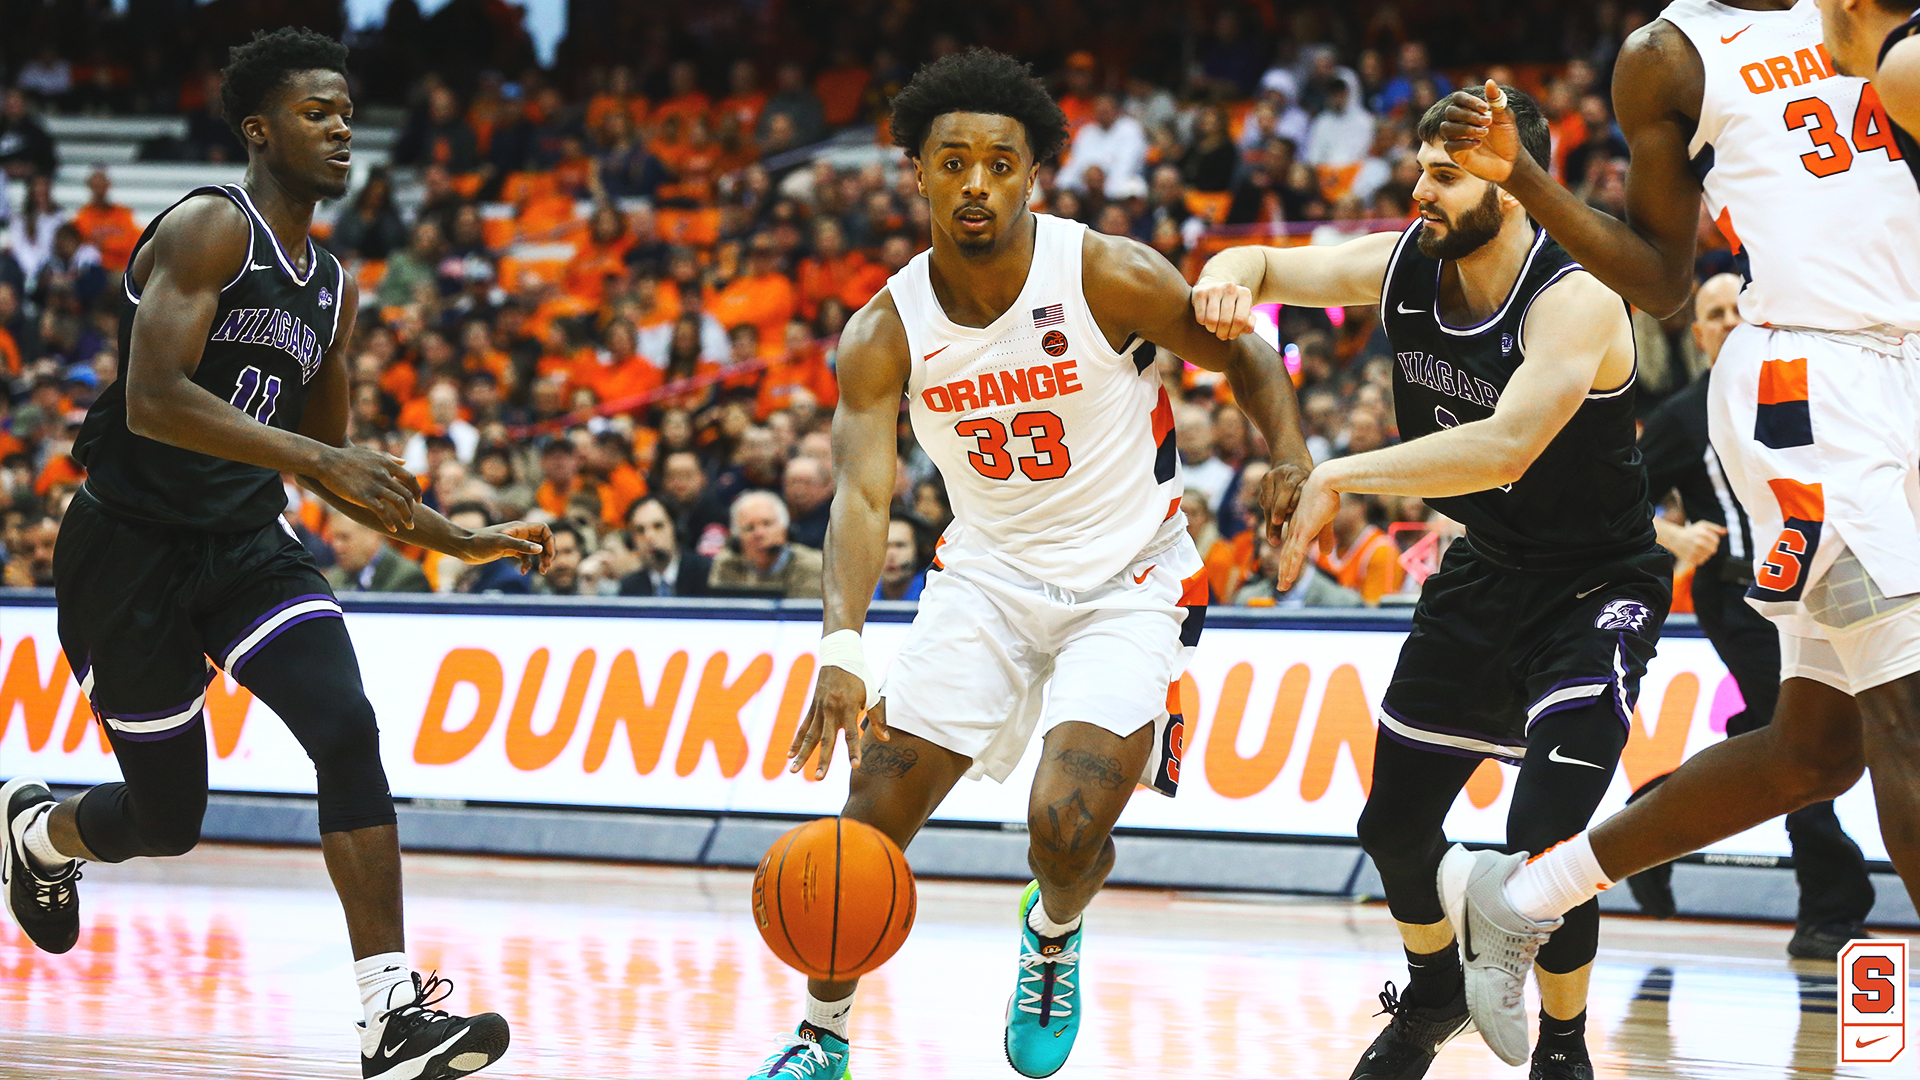 ORANGE GAME DAY: Syracuse takes on Niagara at Carrier Dome tonight (preview & info)